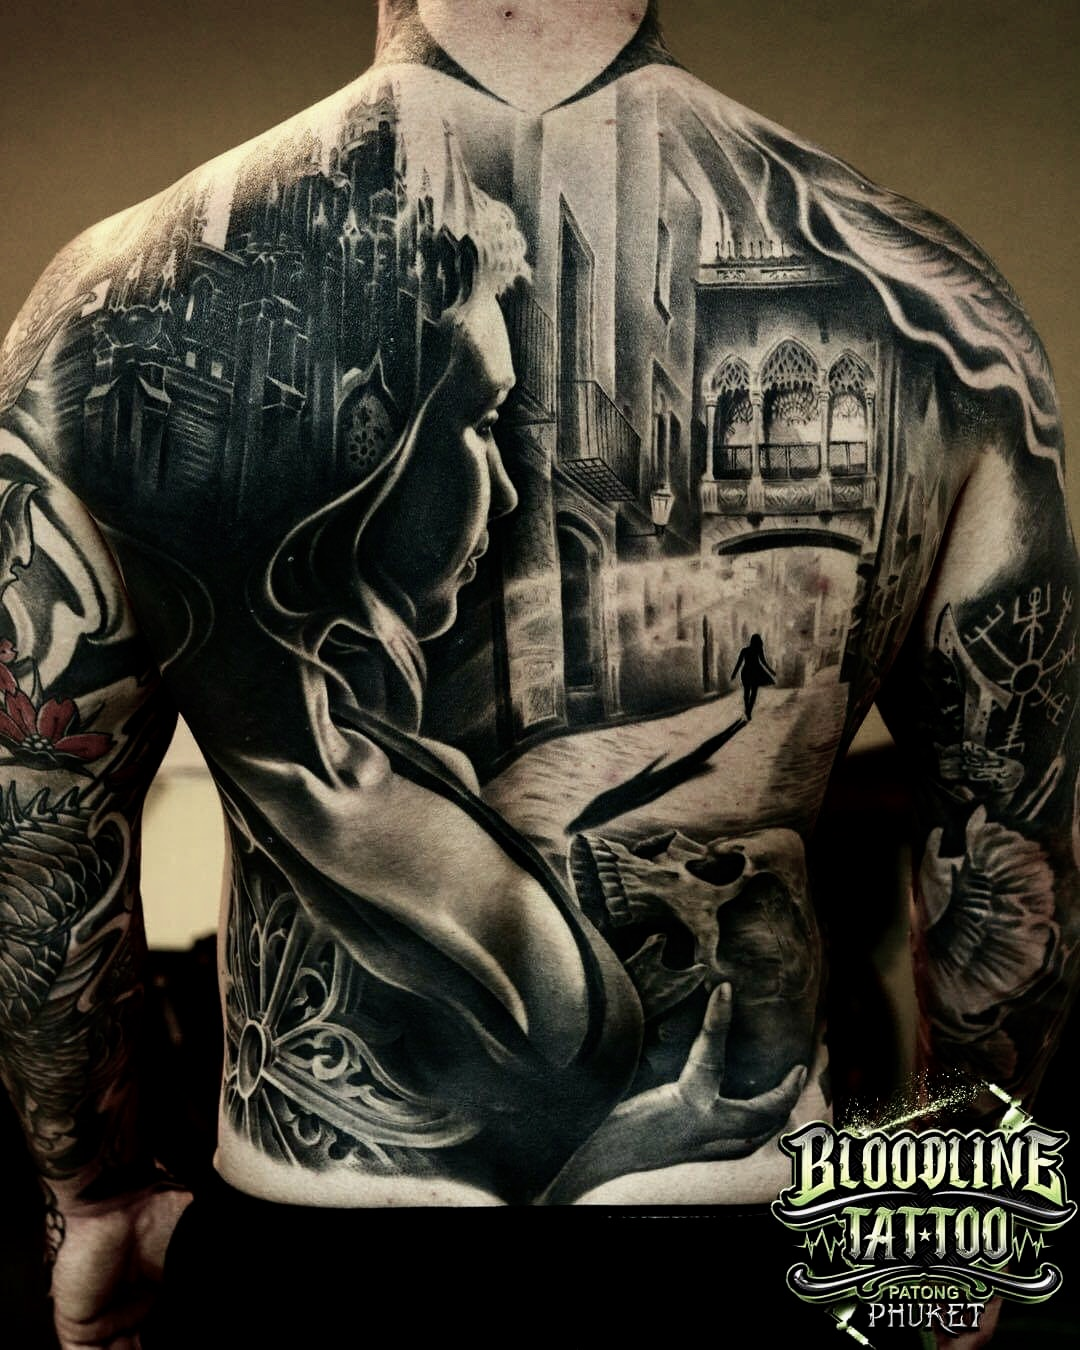 Bloodline Tattoo Patong, Phuket